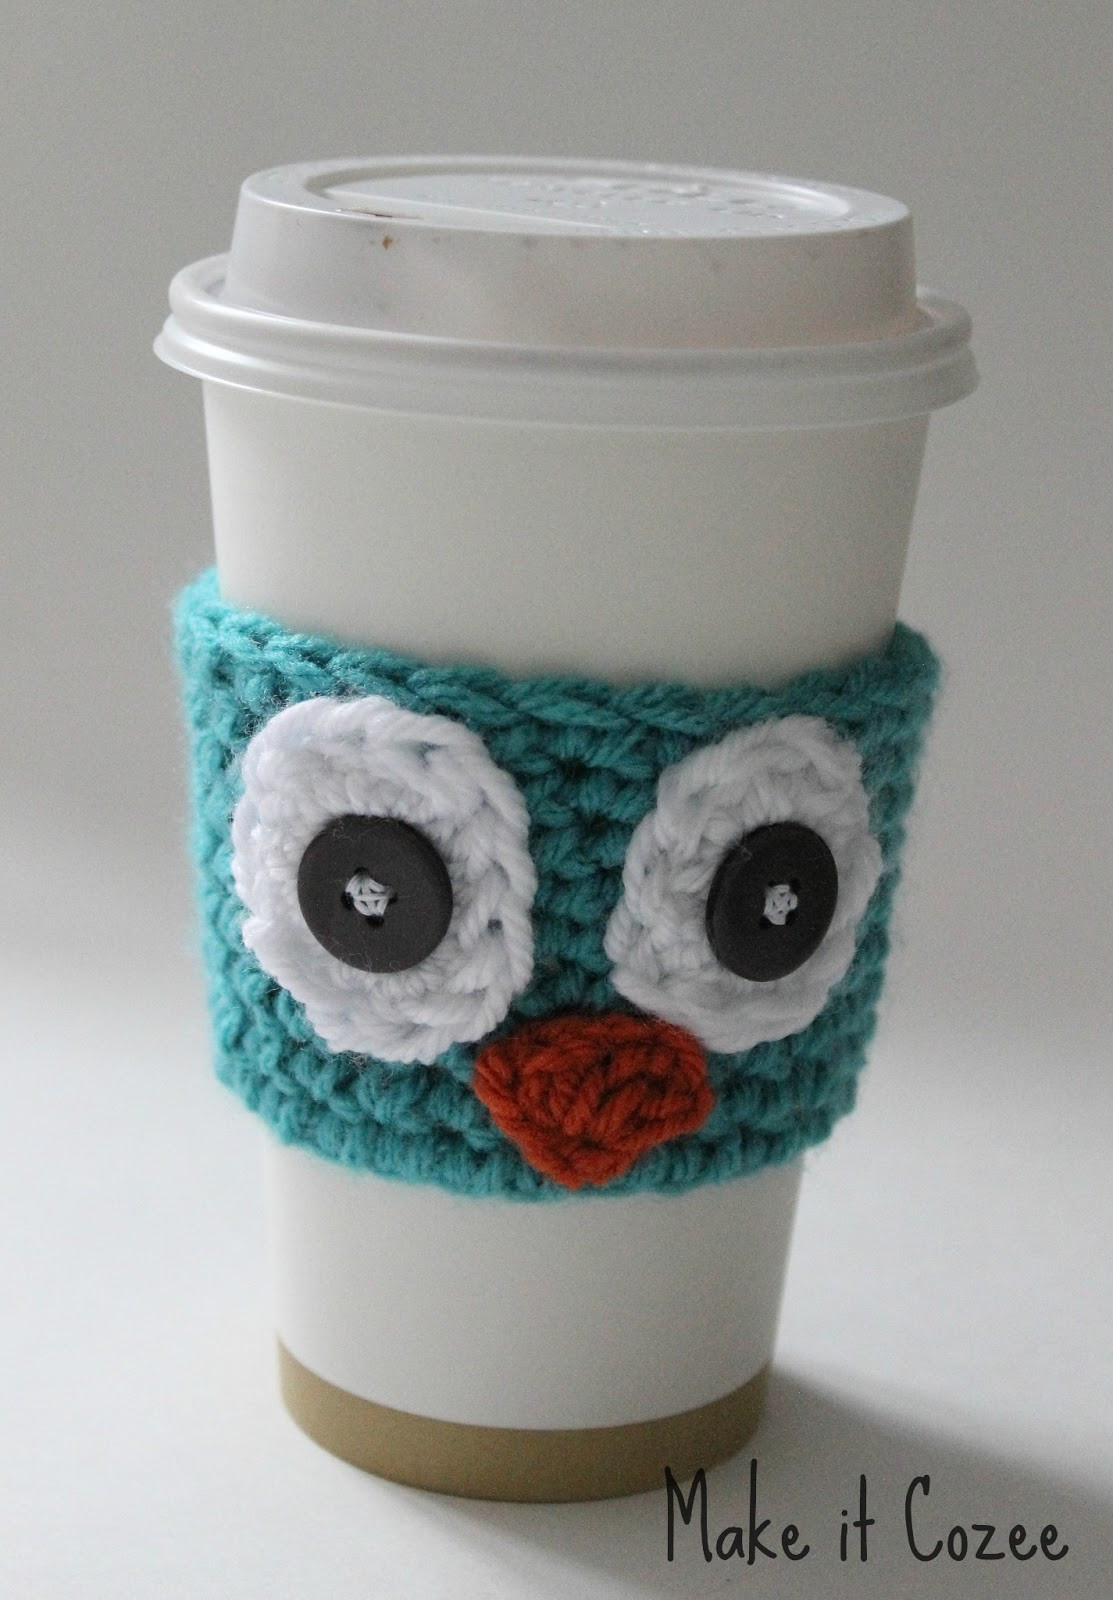 Crochet Coffee Cup Cozy Inspirational Make It Cozee Crochet Owl Coffee Cozy Of Crochet Coffee Cup Cozy Unique Mrsbrits Ribbed Coffee Cozy Crochet Pattern